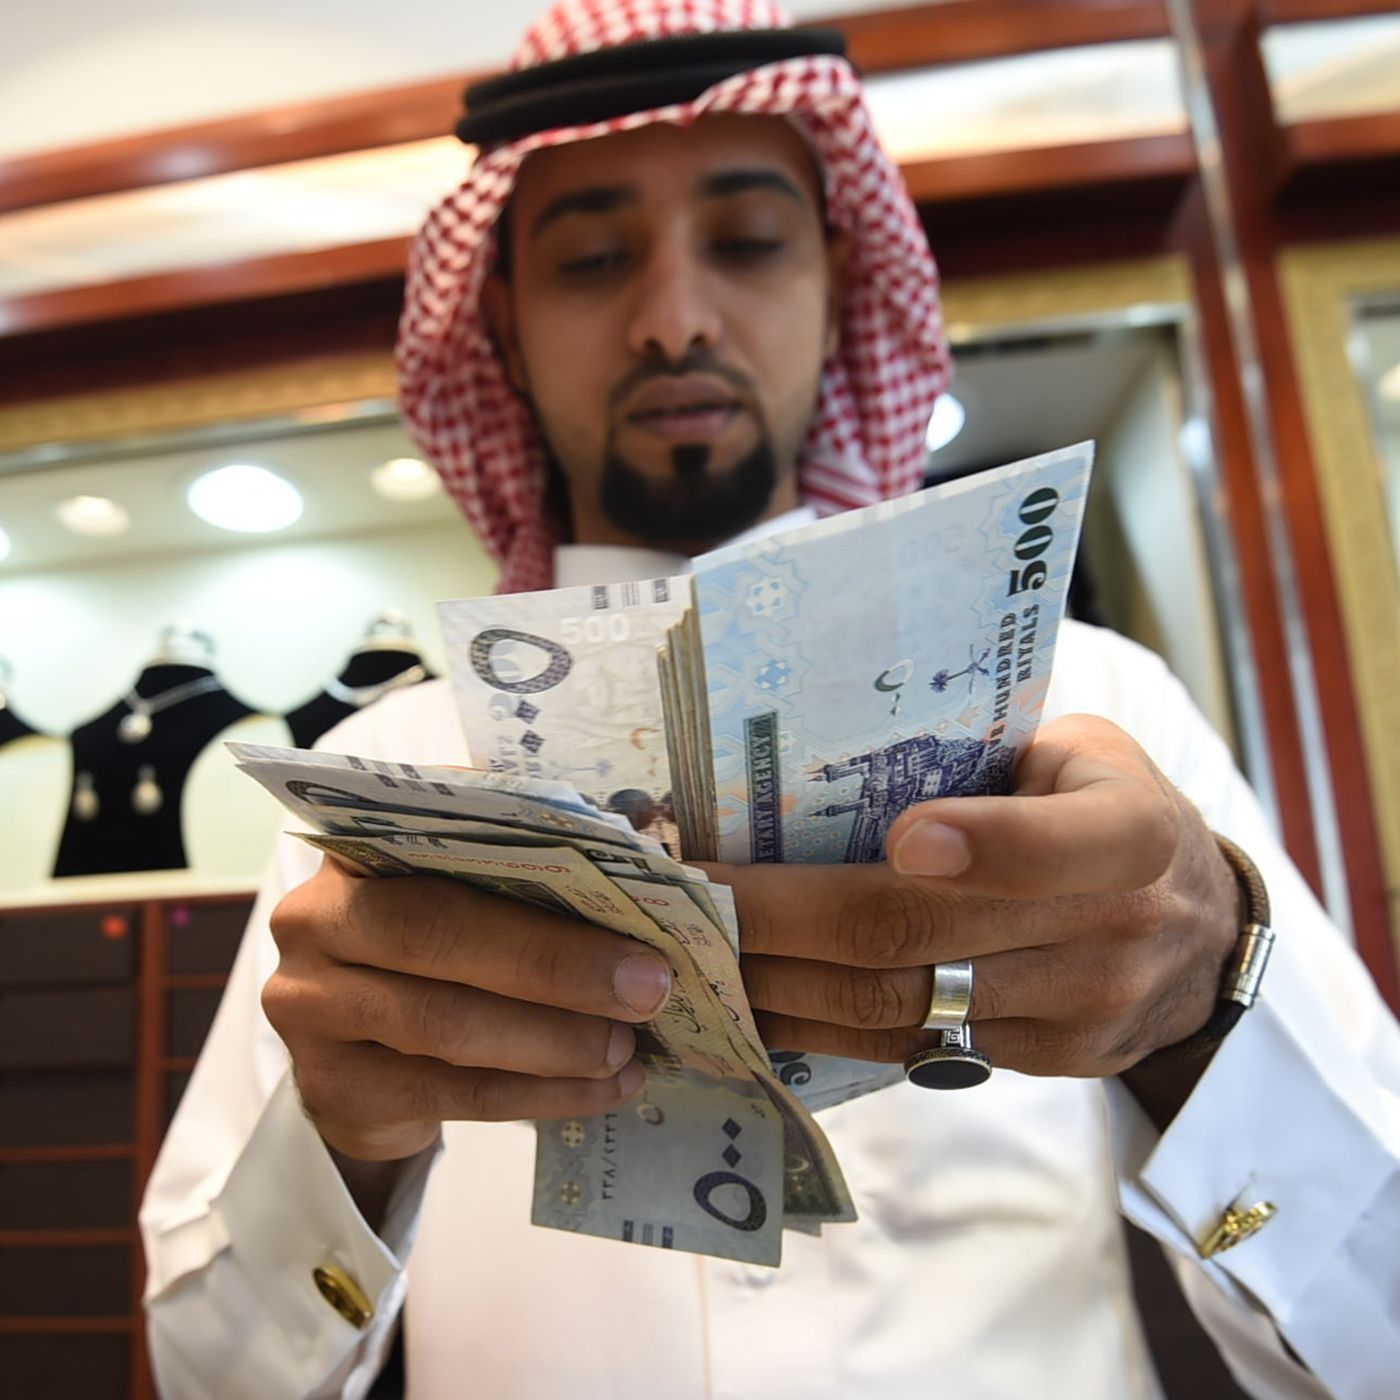 Saudi Arabia's strict religious rules cost its economy tens